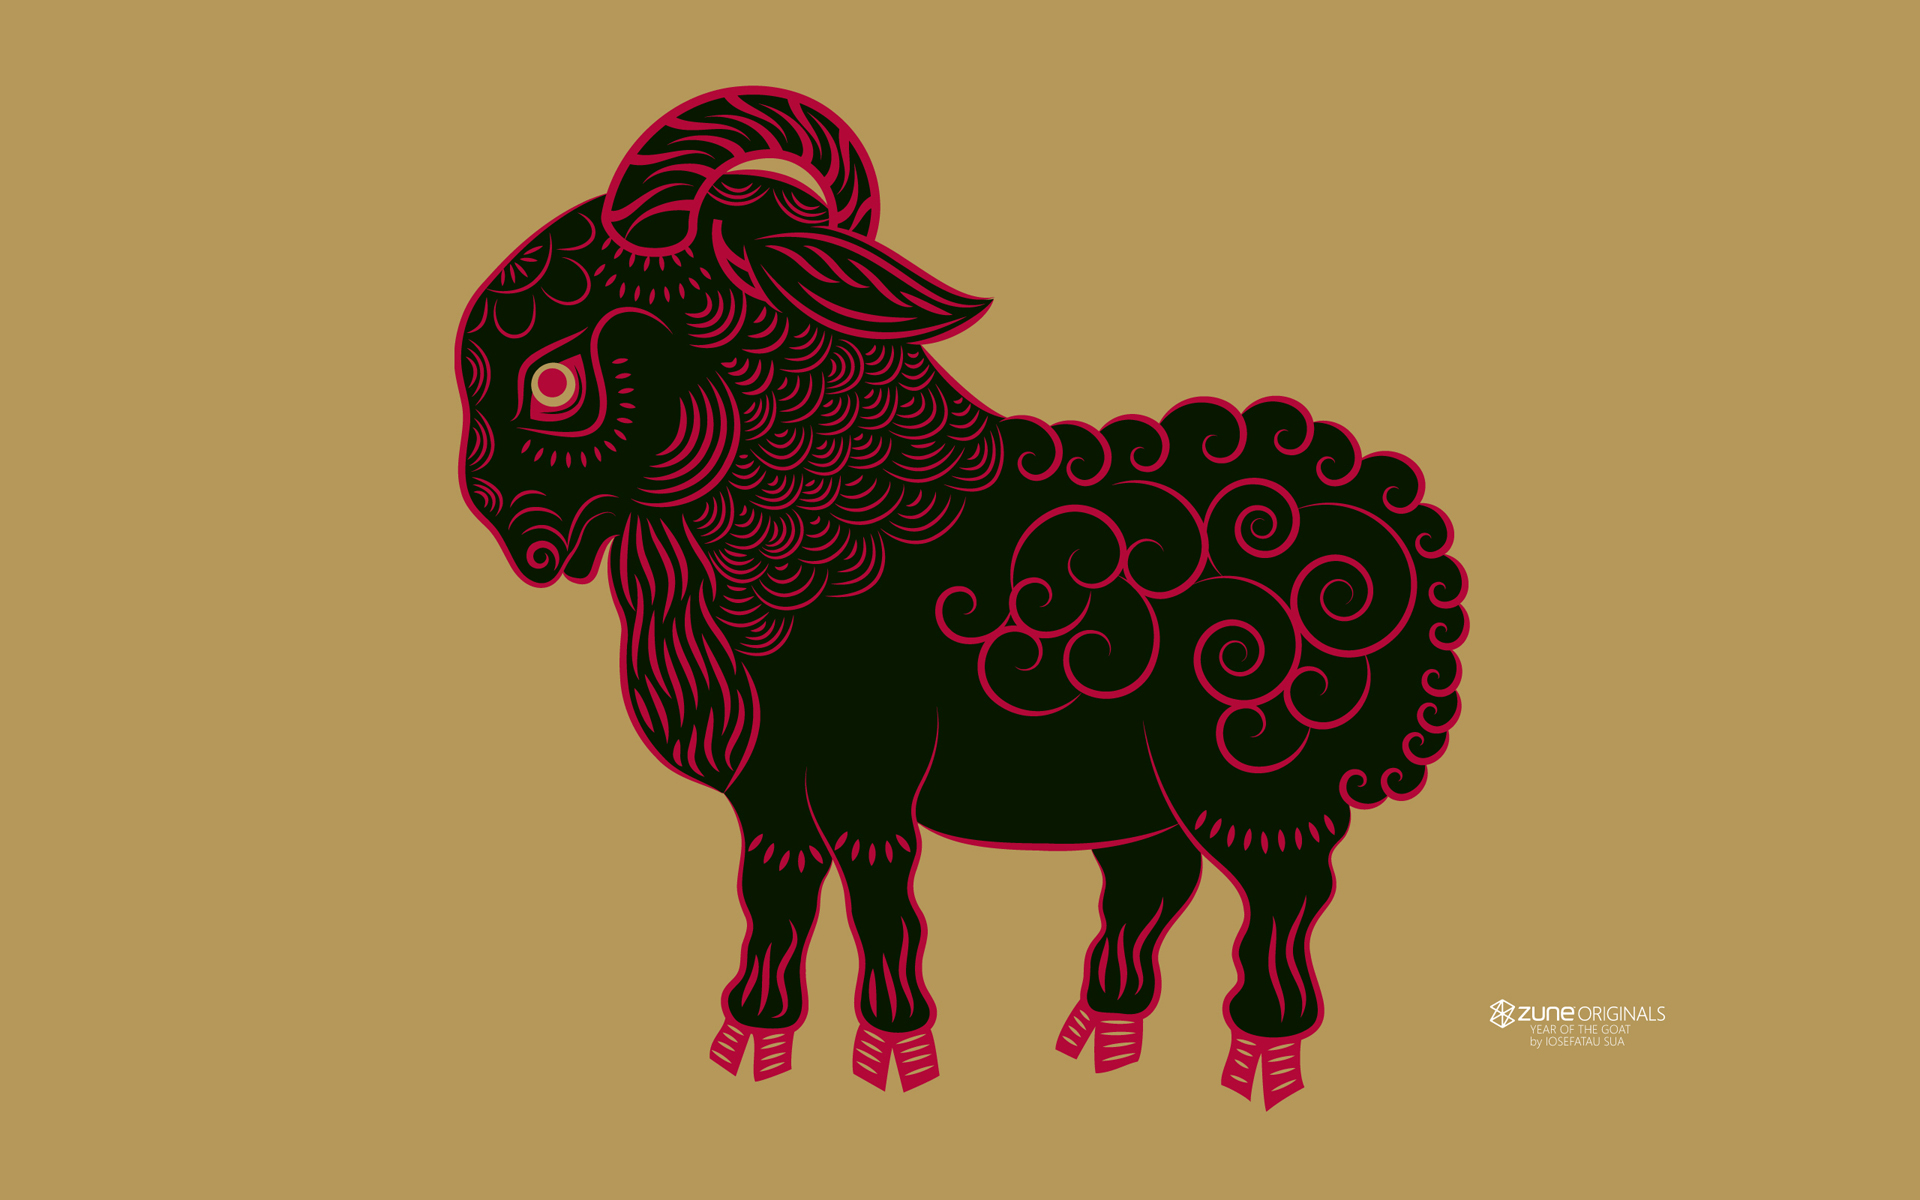 chinese zodiac images year of the goat hd wallpaper and background